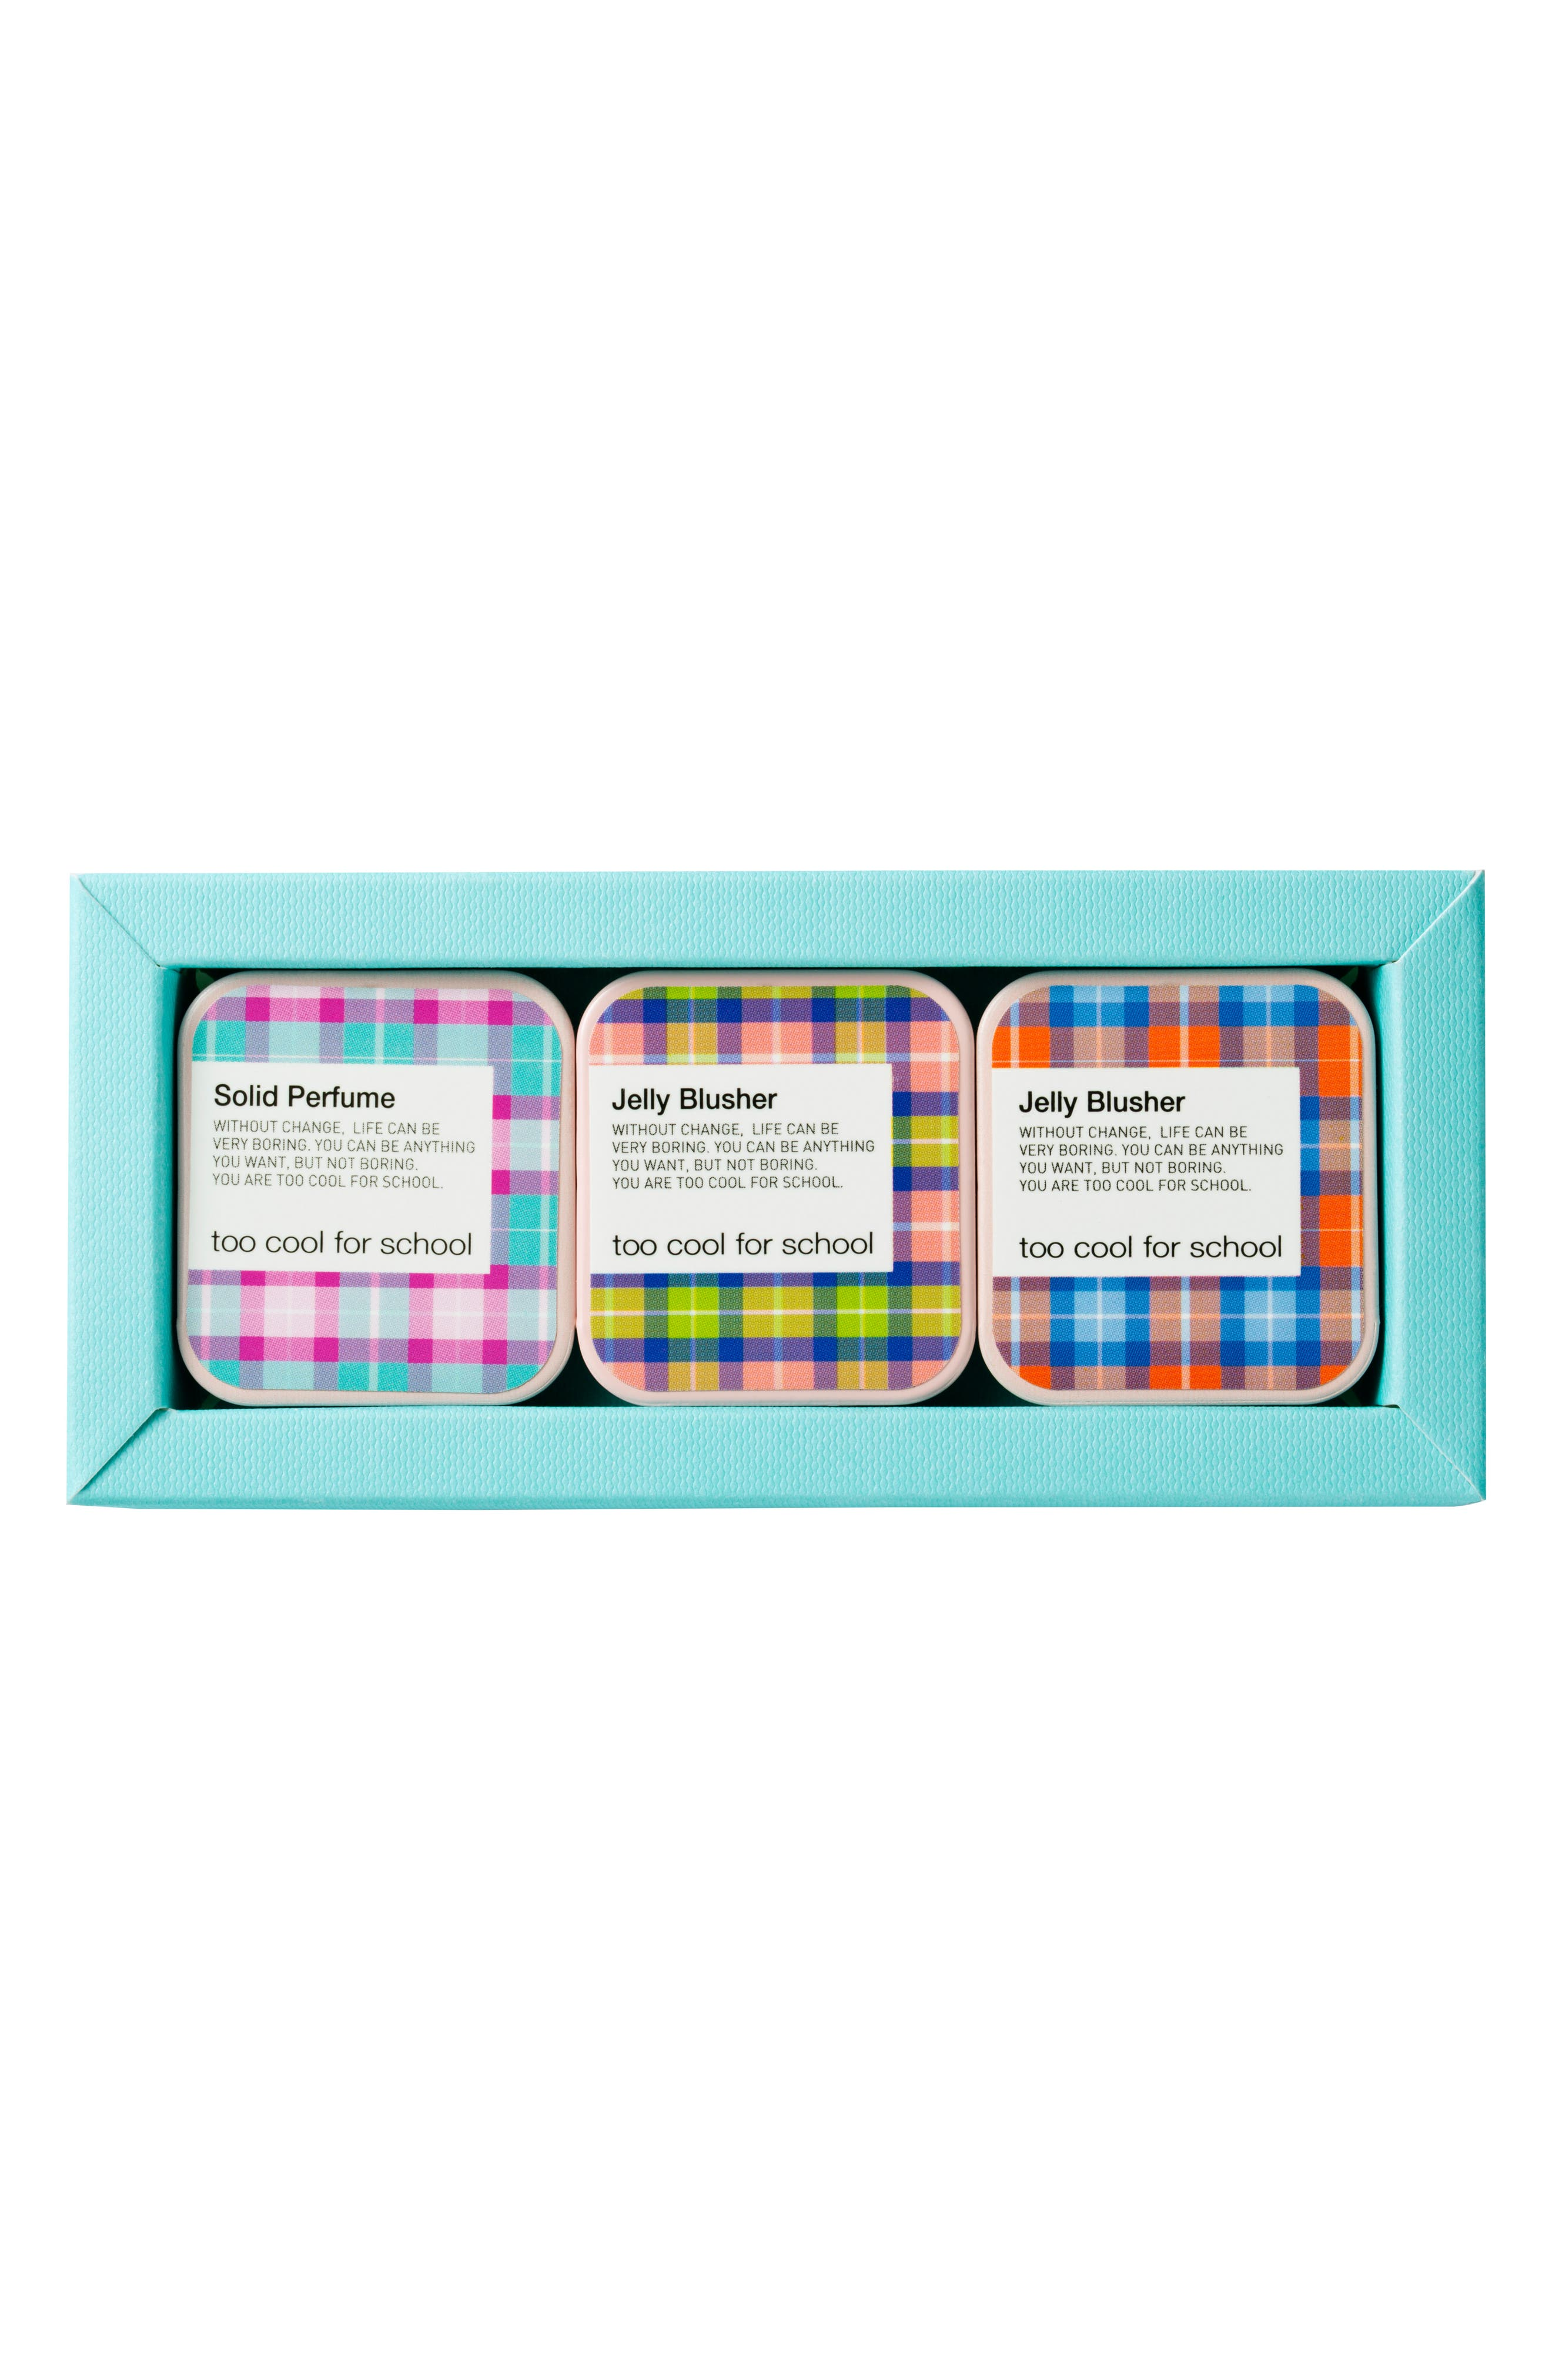 Too Cool for School Jelly Blusher & Solid Perfume Trio (limited Edition)